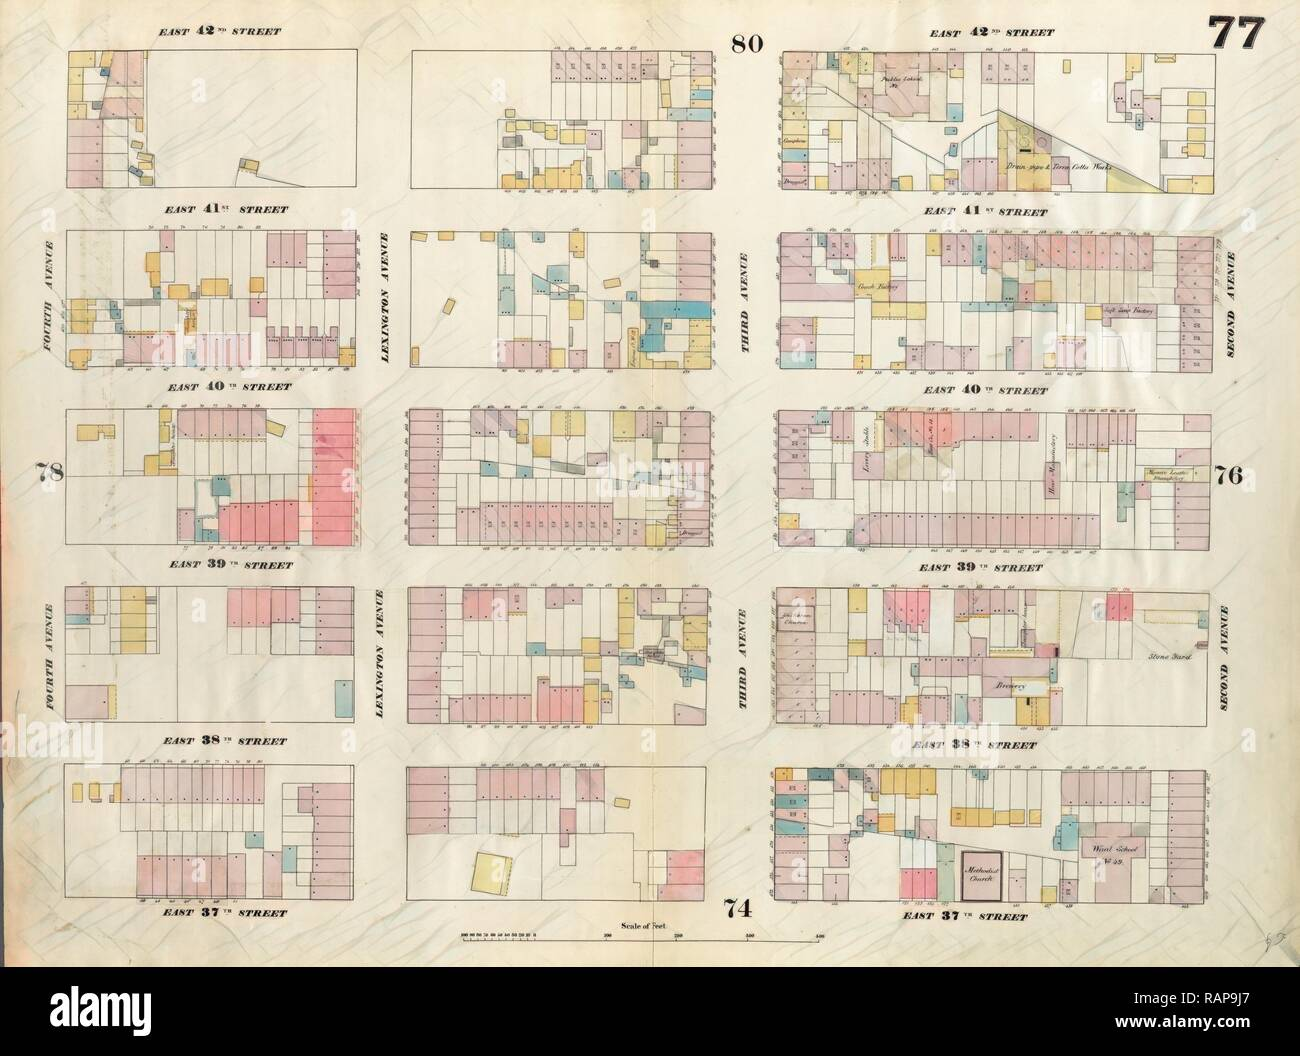 Plate 77: Map bounded by East 42nd Street, Second Avenue, East 37th Street, Fourth Avenue. 1857, 1862, Perris and reimagined - Stock Image